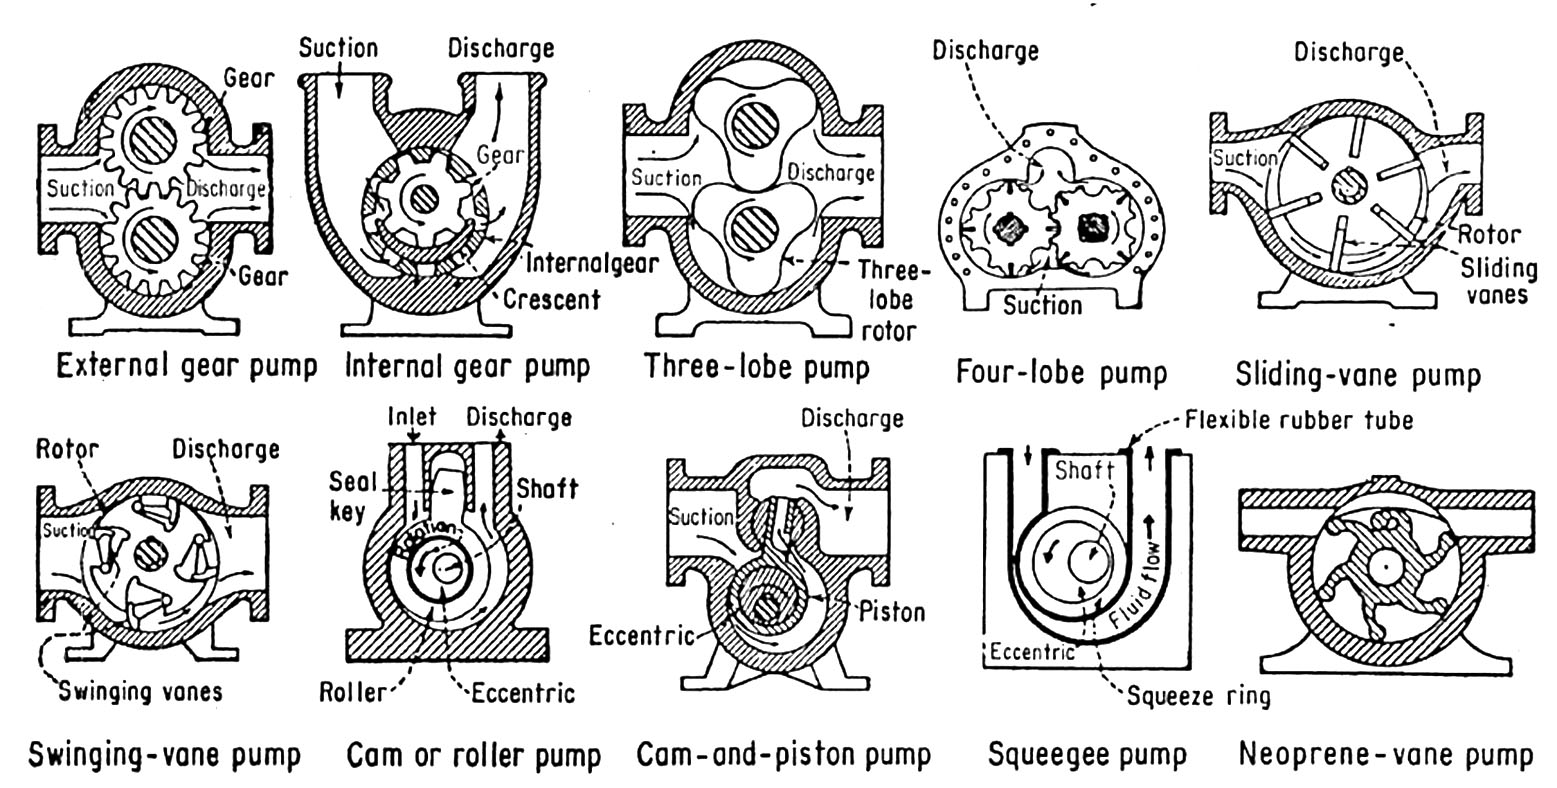 hight resolution of during each revolution of the shaft a constant volume of fluid is delivered to the pump s internal compartment and then exits through the discharge pipe